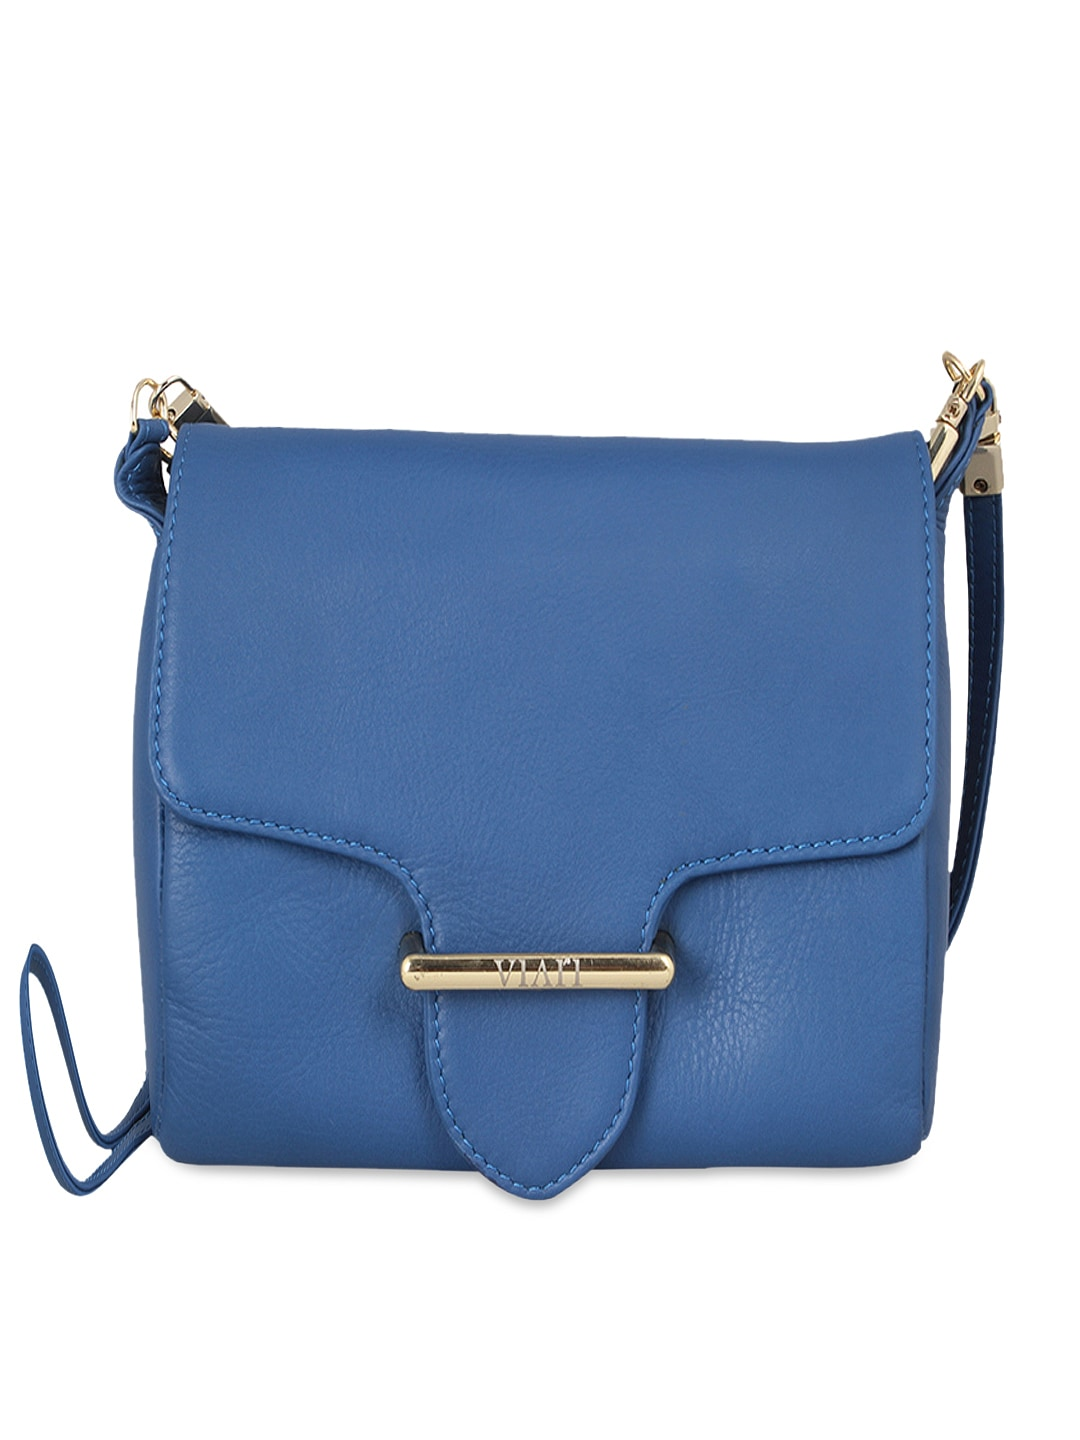 VIARI Blue Cannes Leather Sling Bag